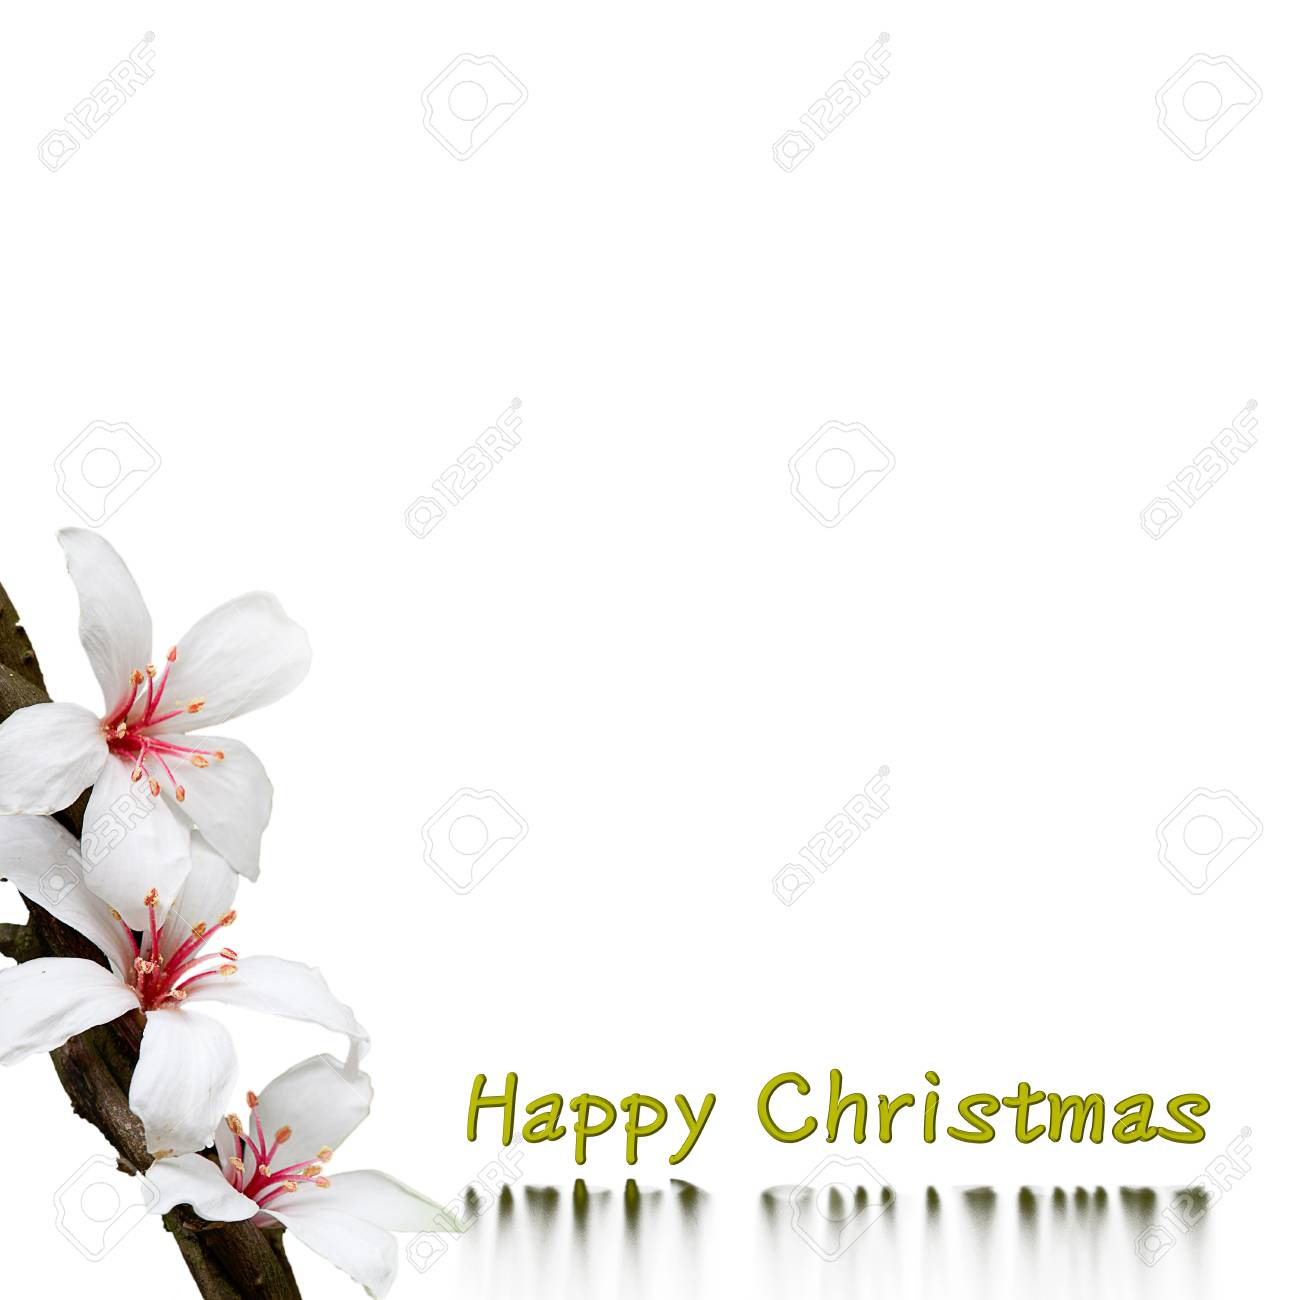 Christmas background design for adv or others purpose use Stock Photo - 16130048